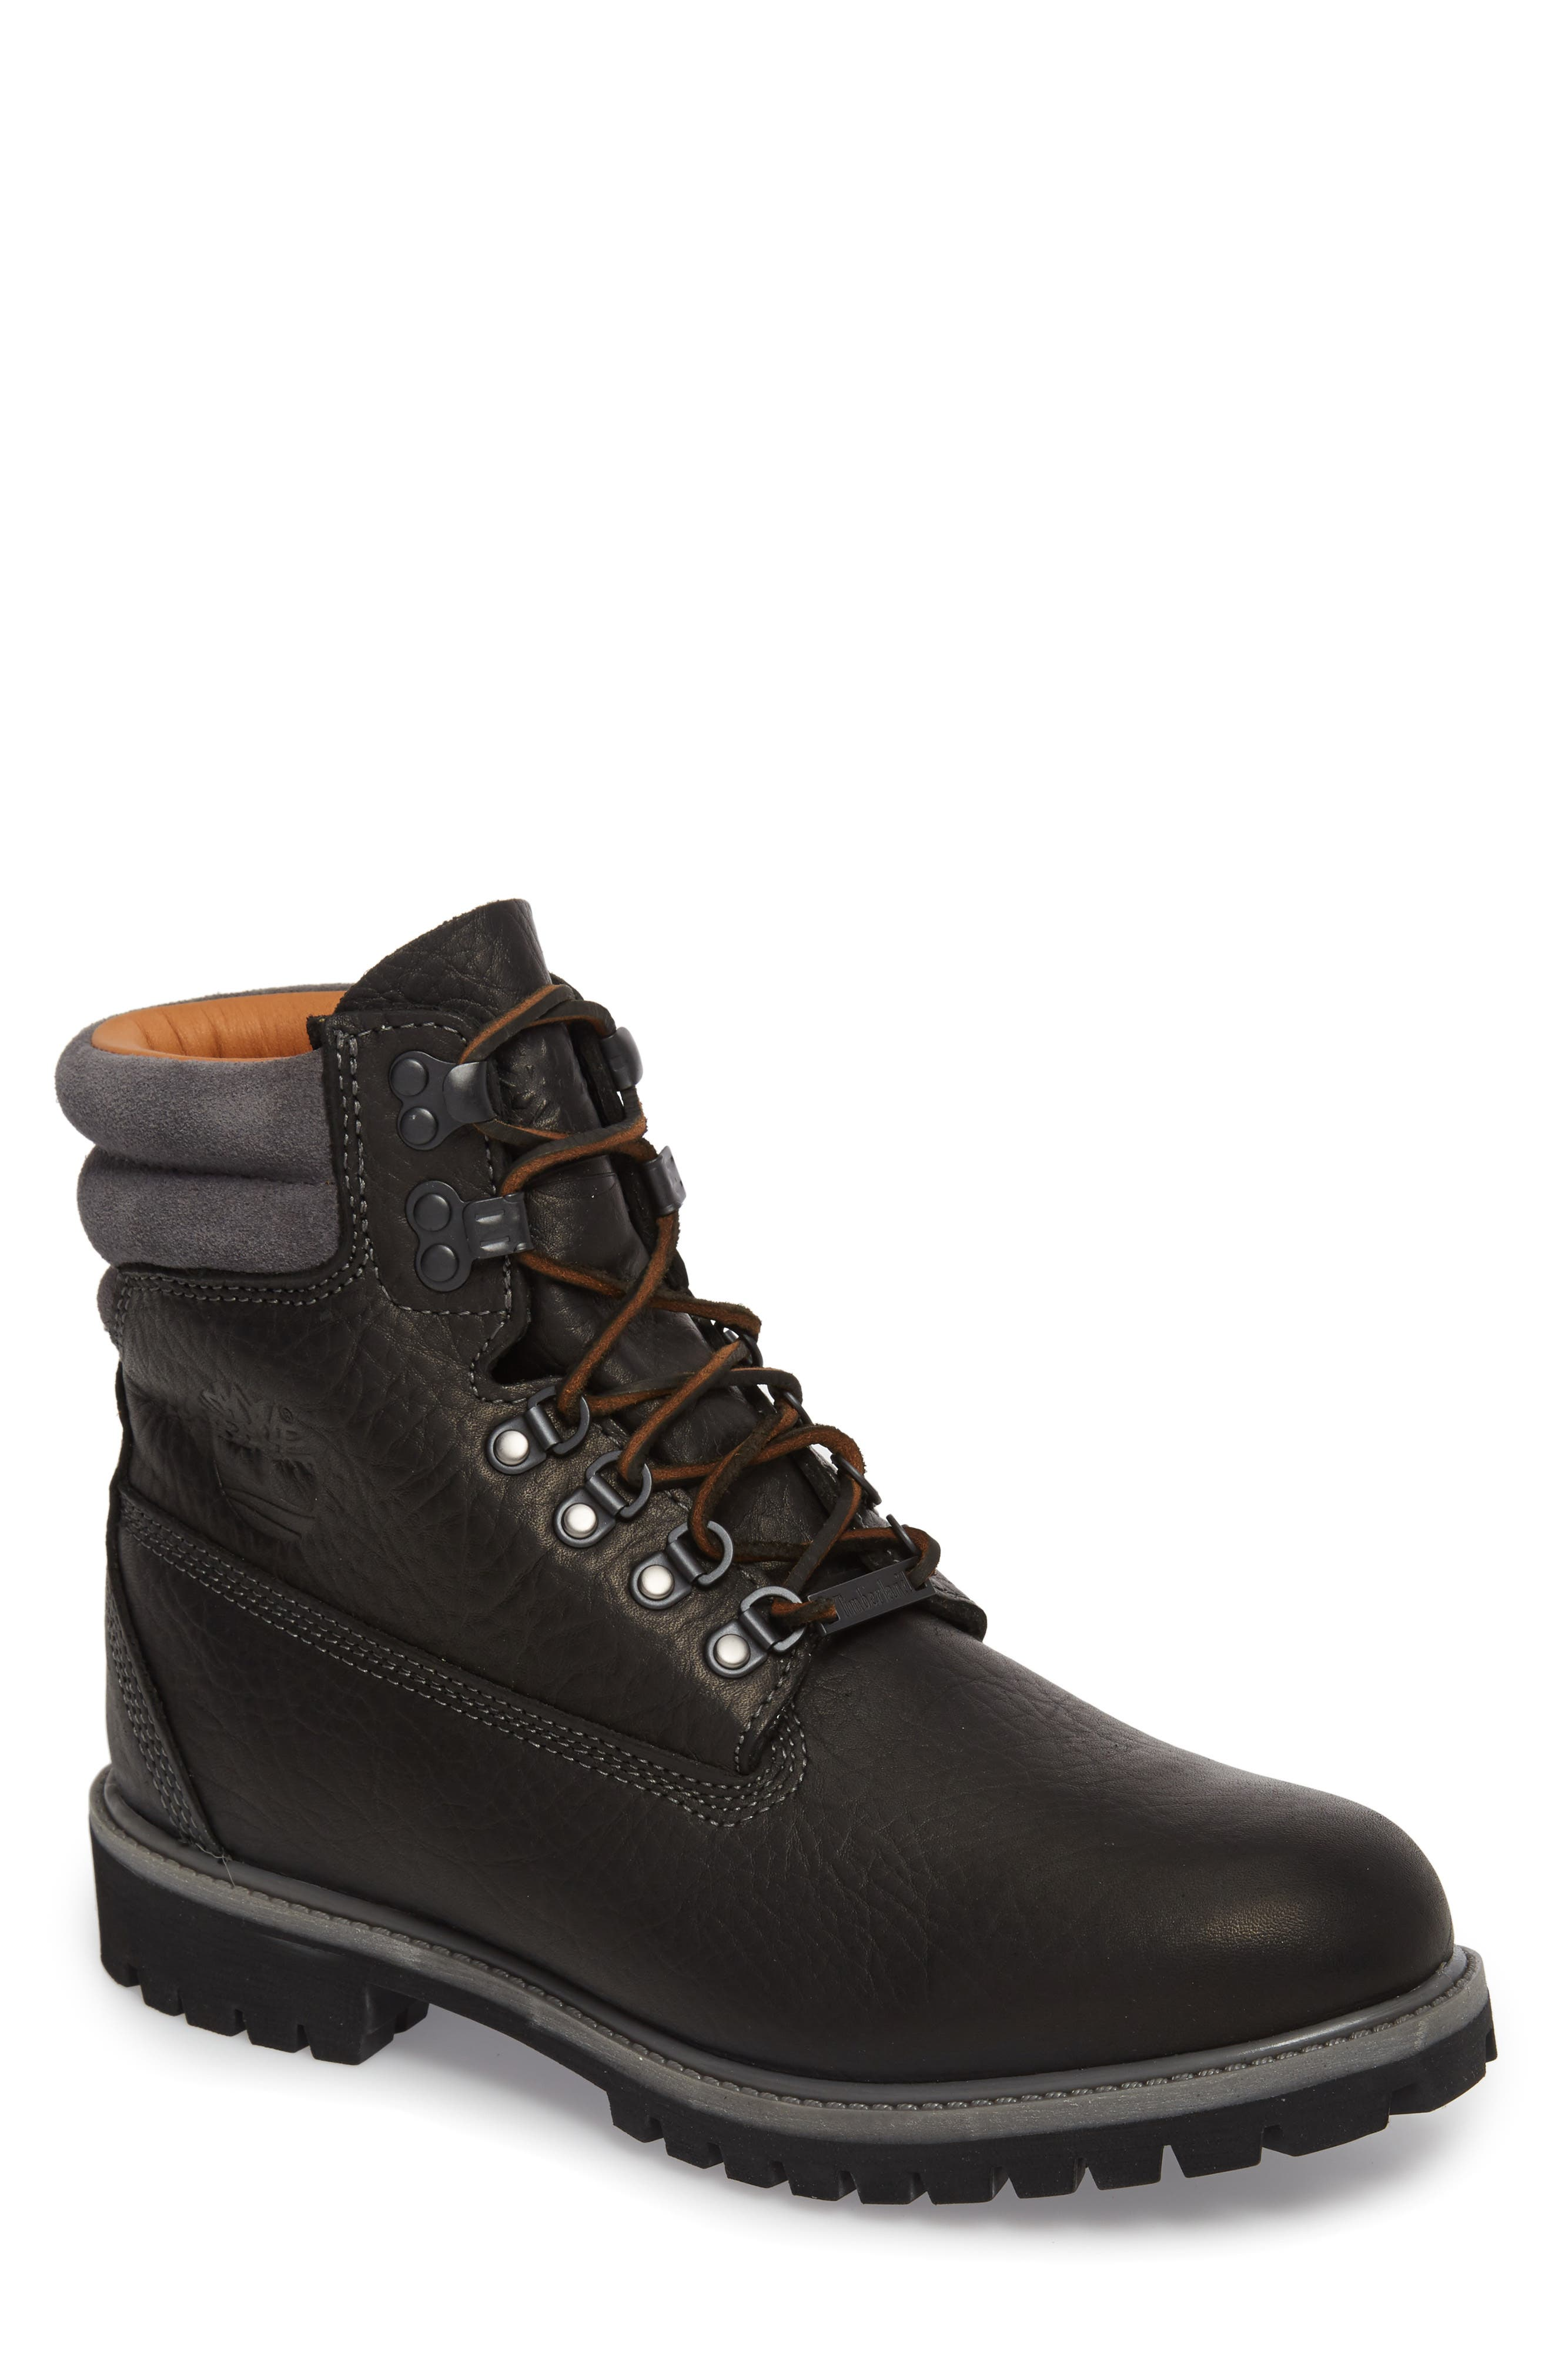 640 Below Plain Toe Boot,                         Main,                         color, Black Highway Leather